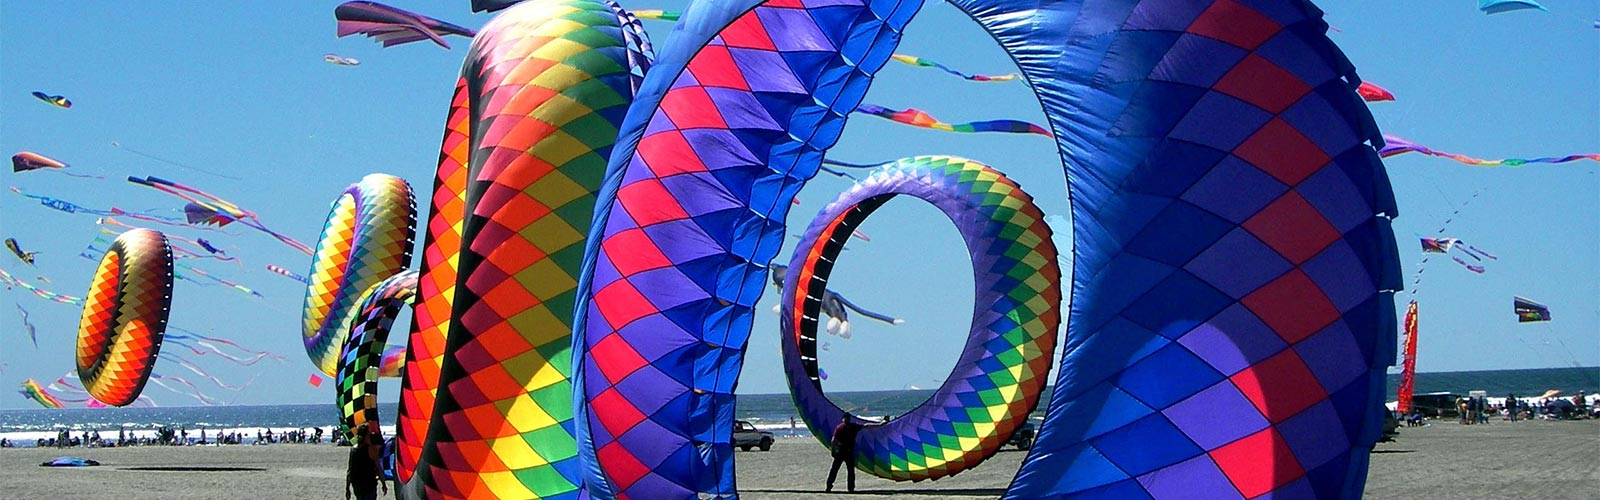 Kite Festival Destination